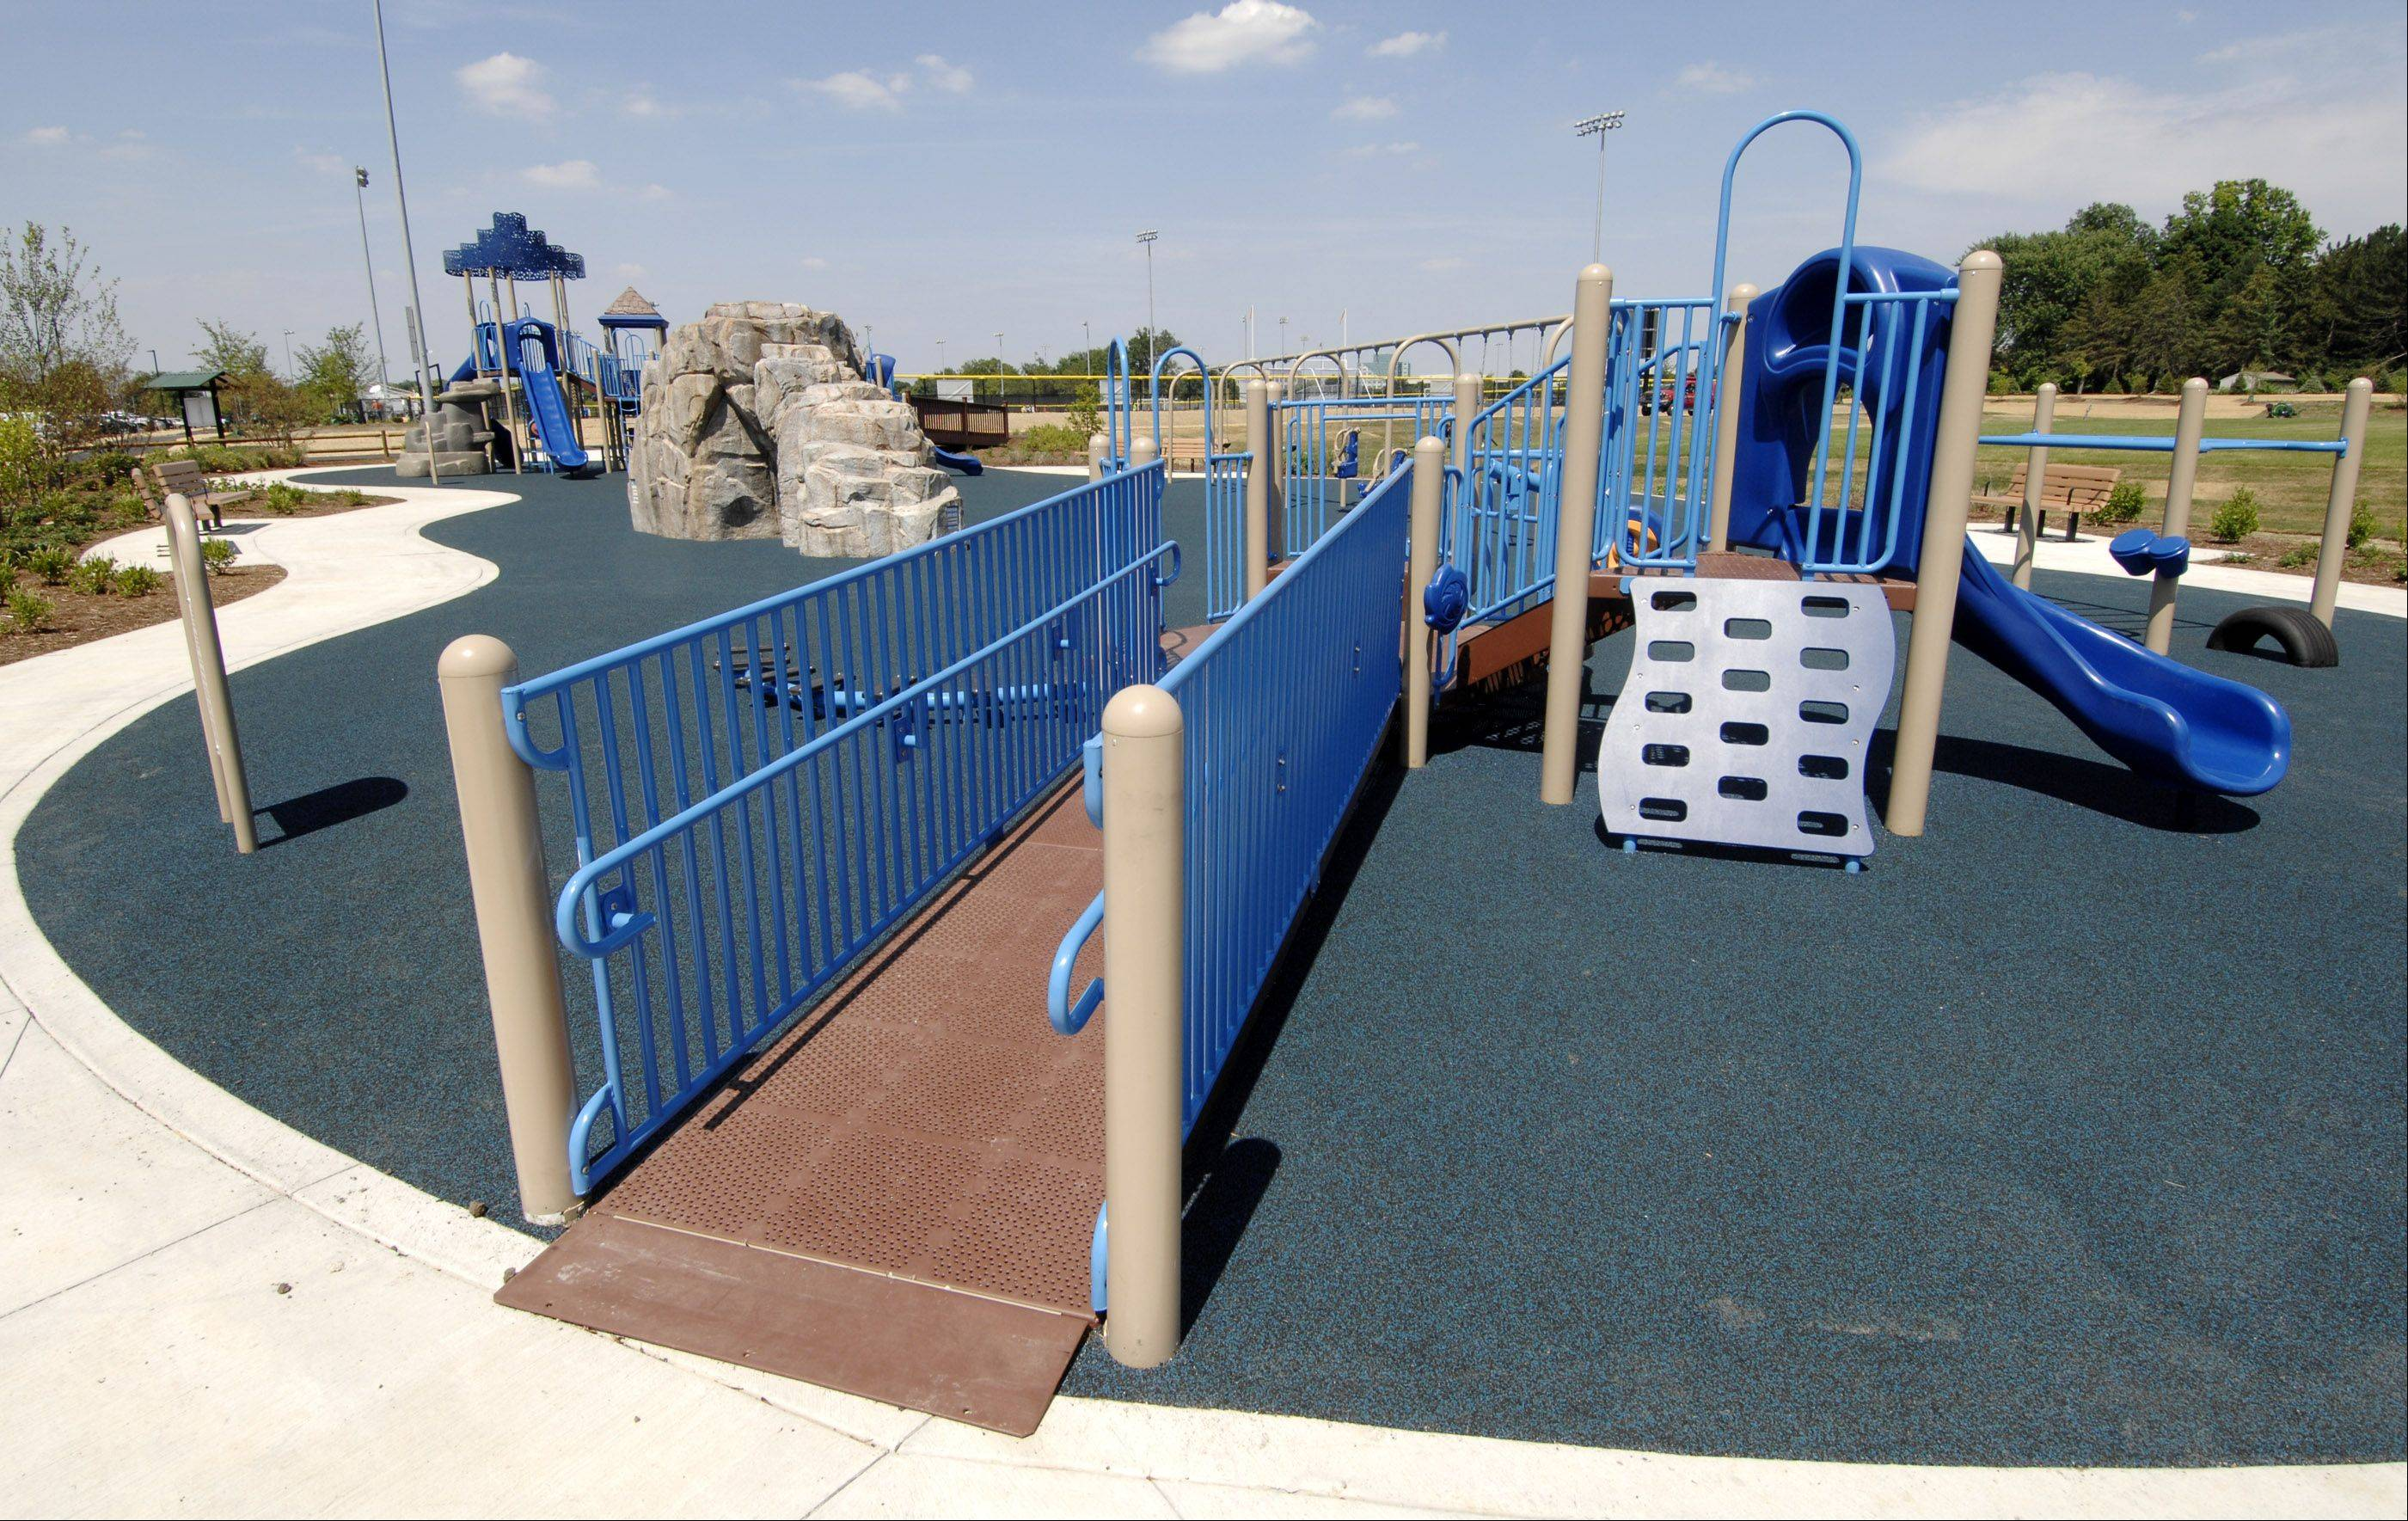 The new children's playground area has a rubbery surface and ramps for accessibility at the newly refurbished Nike Sports Complex on Mill Street just south of Diehl Road in Naperville.